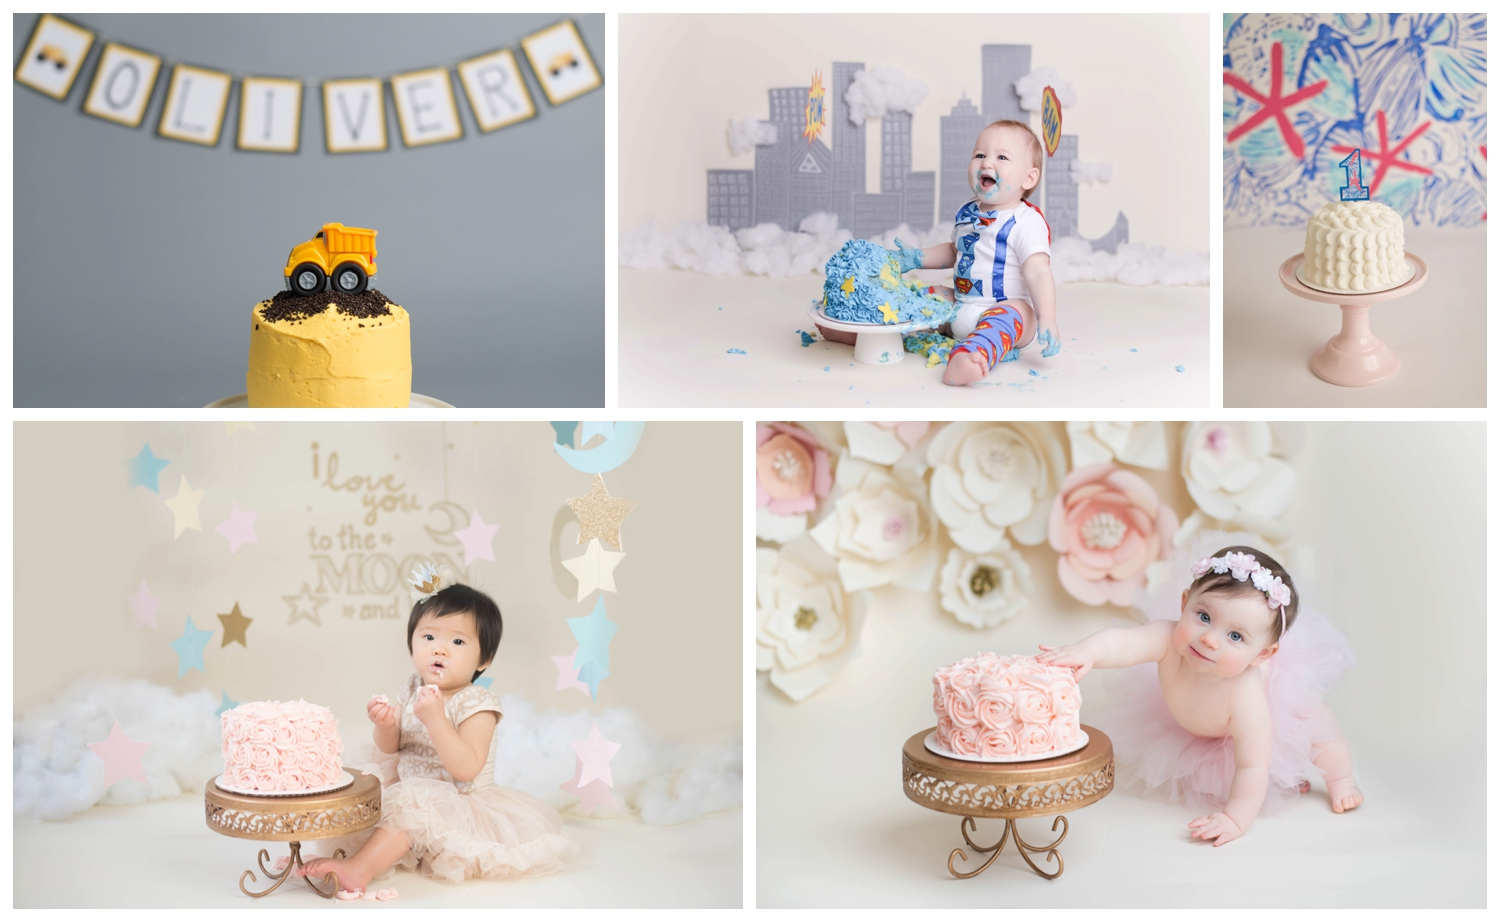 Cake Smash Themes, Nicole Starr Photography